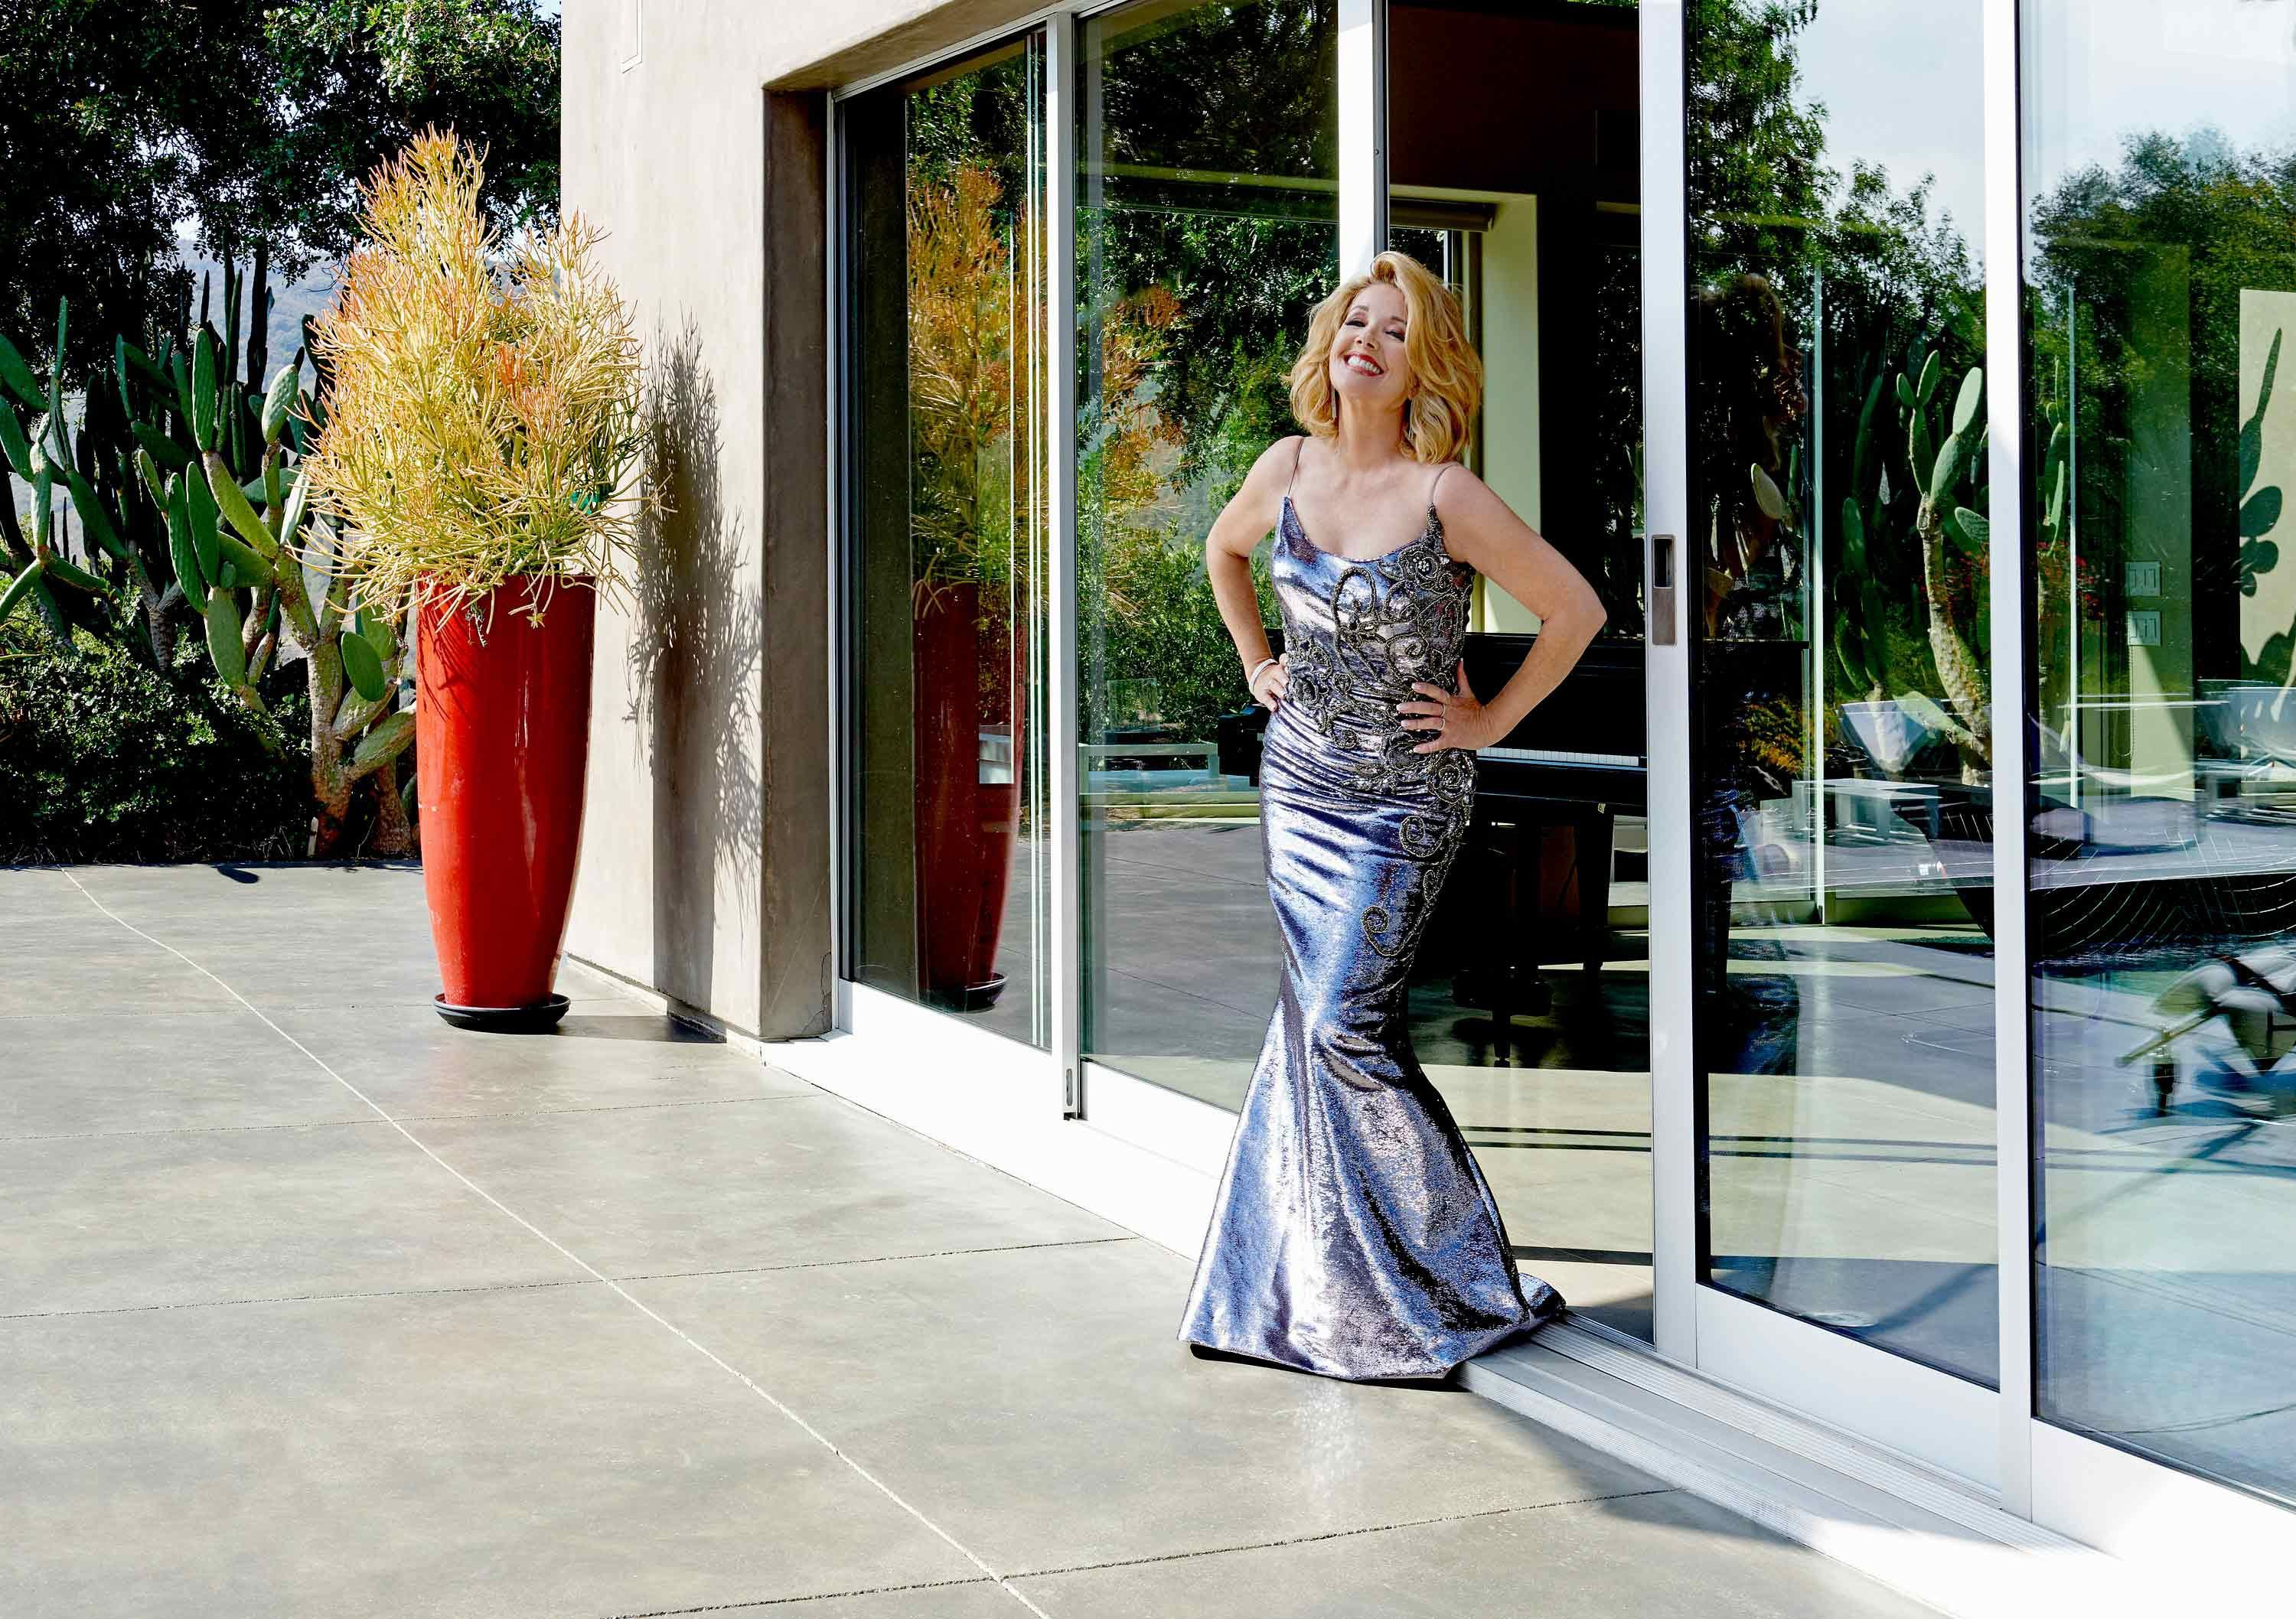 \u200bMelody Thomas Scott shimmers in a hip-hugging metallic embroidered gown